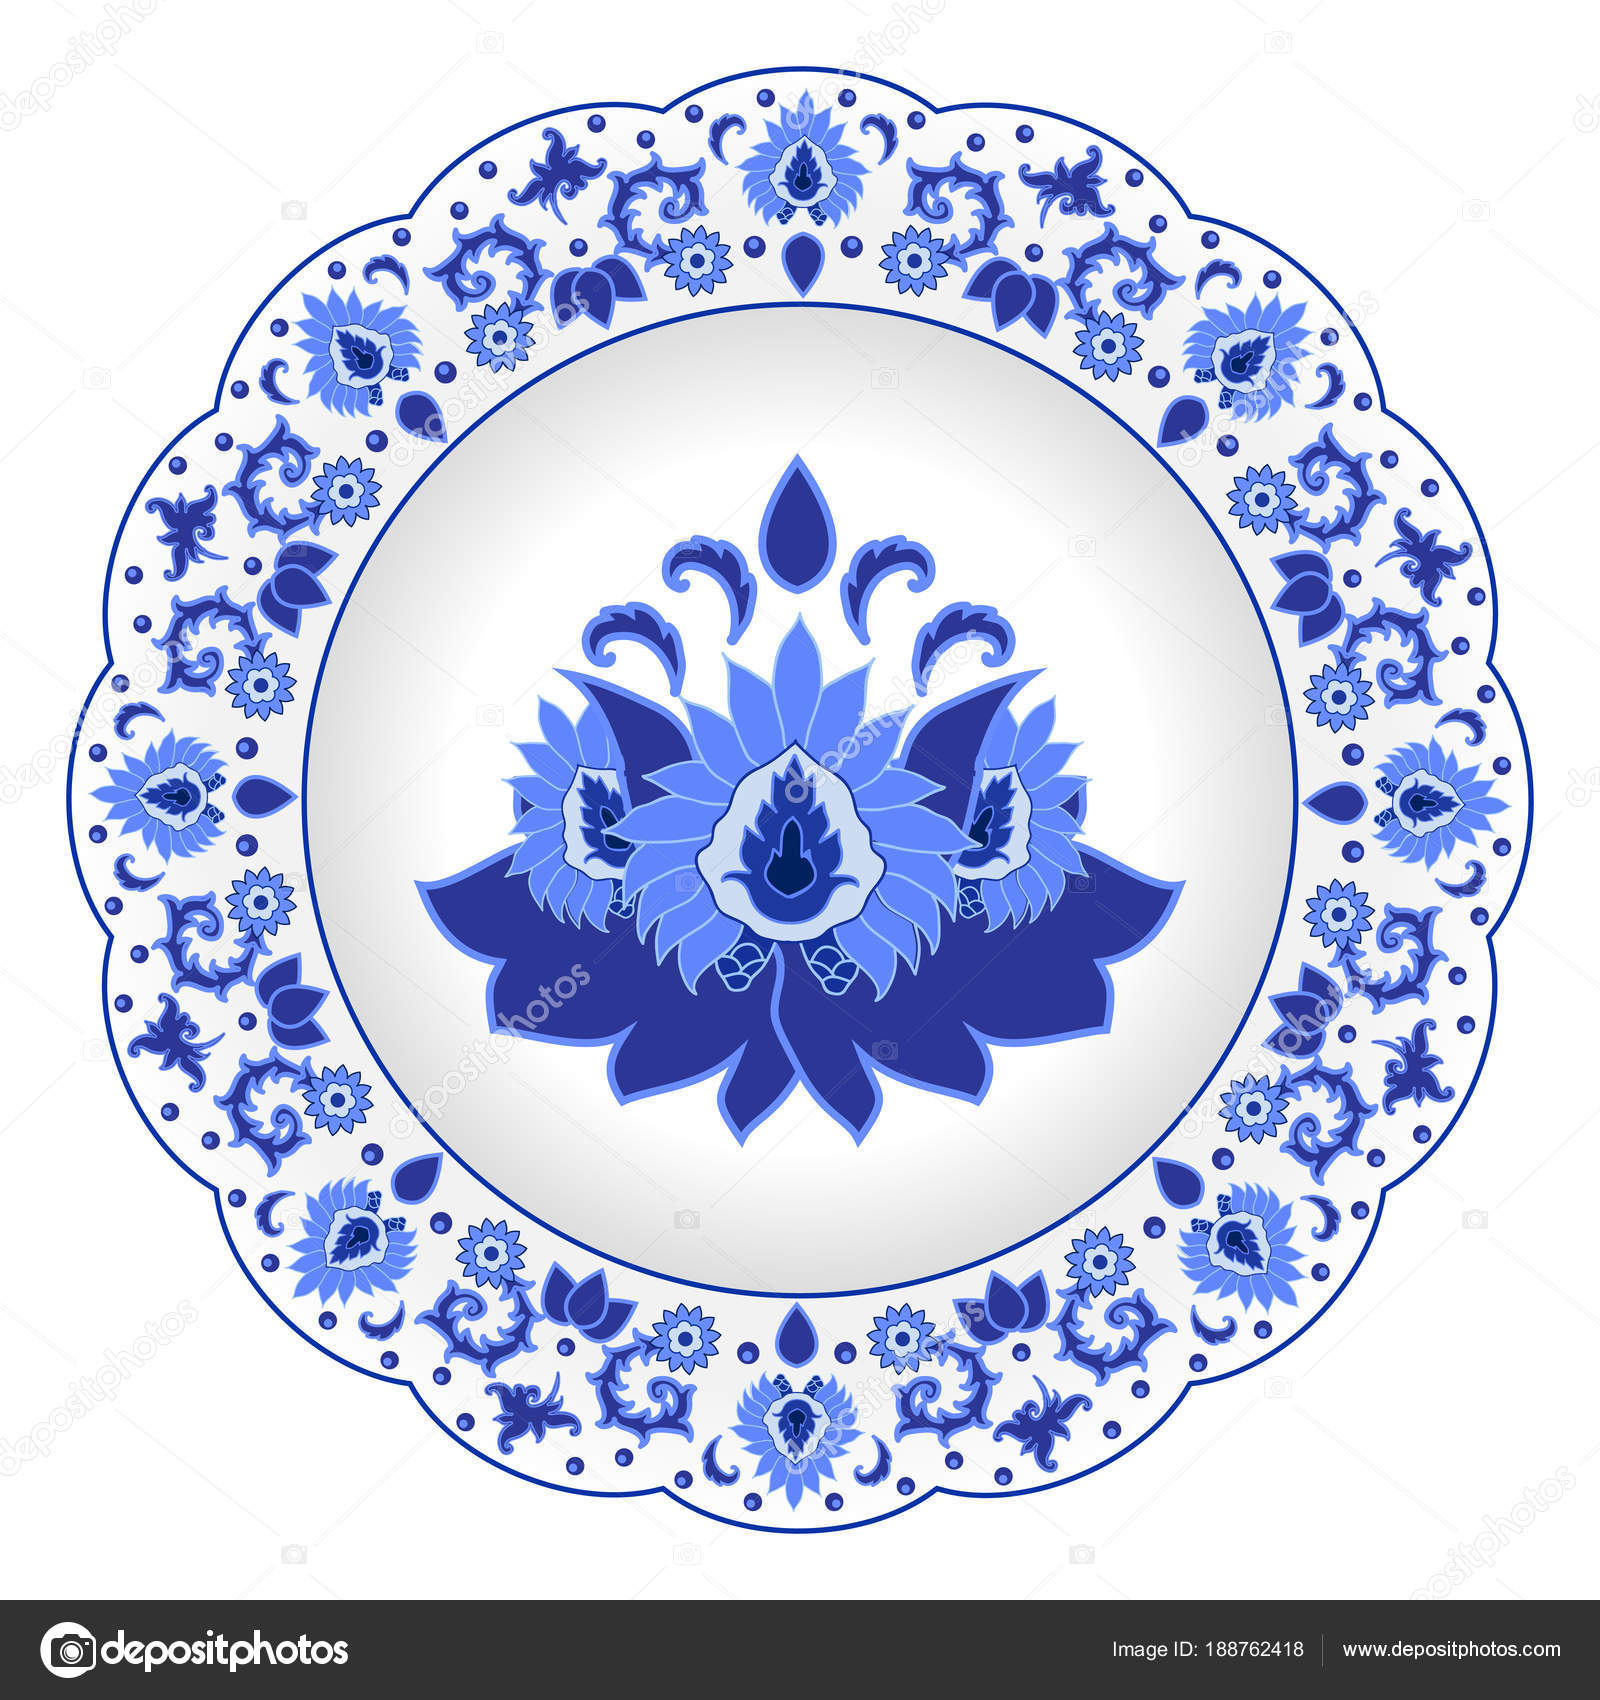 Decorative porcelain plate ornate in traditional Russian style Gzhel. Isolated white plate with blue floral pattern. Vector illustration u2014 Vector by ...  sc 1 st  Depositphotos & Decorative Porcelain Plate Ornate Traditional Russian Style Gzhel ...